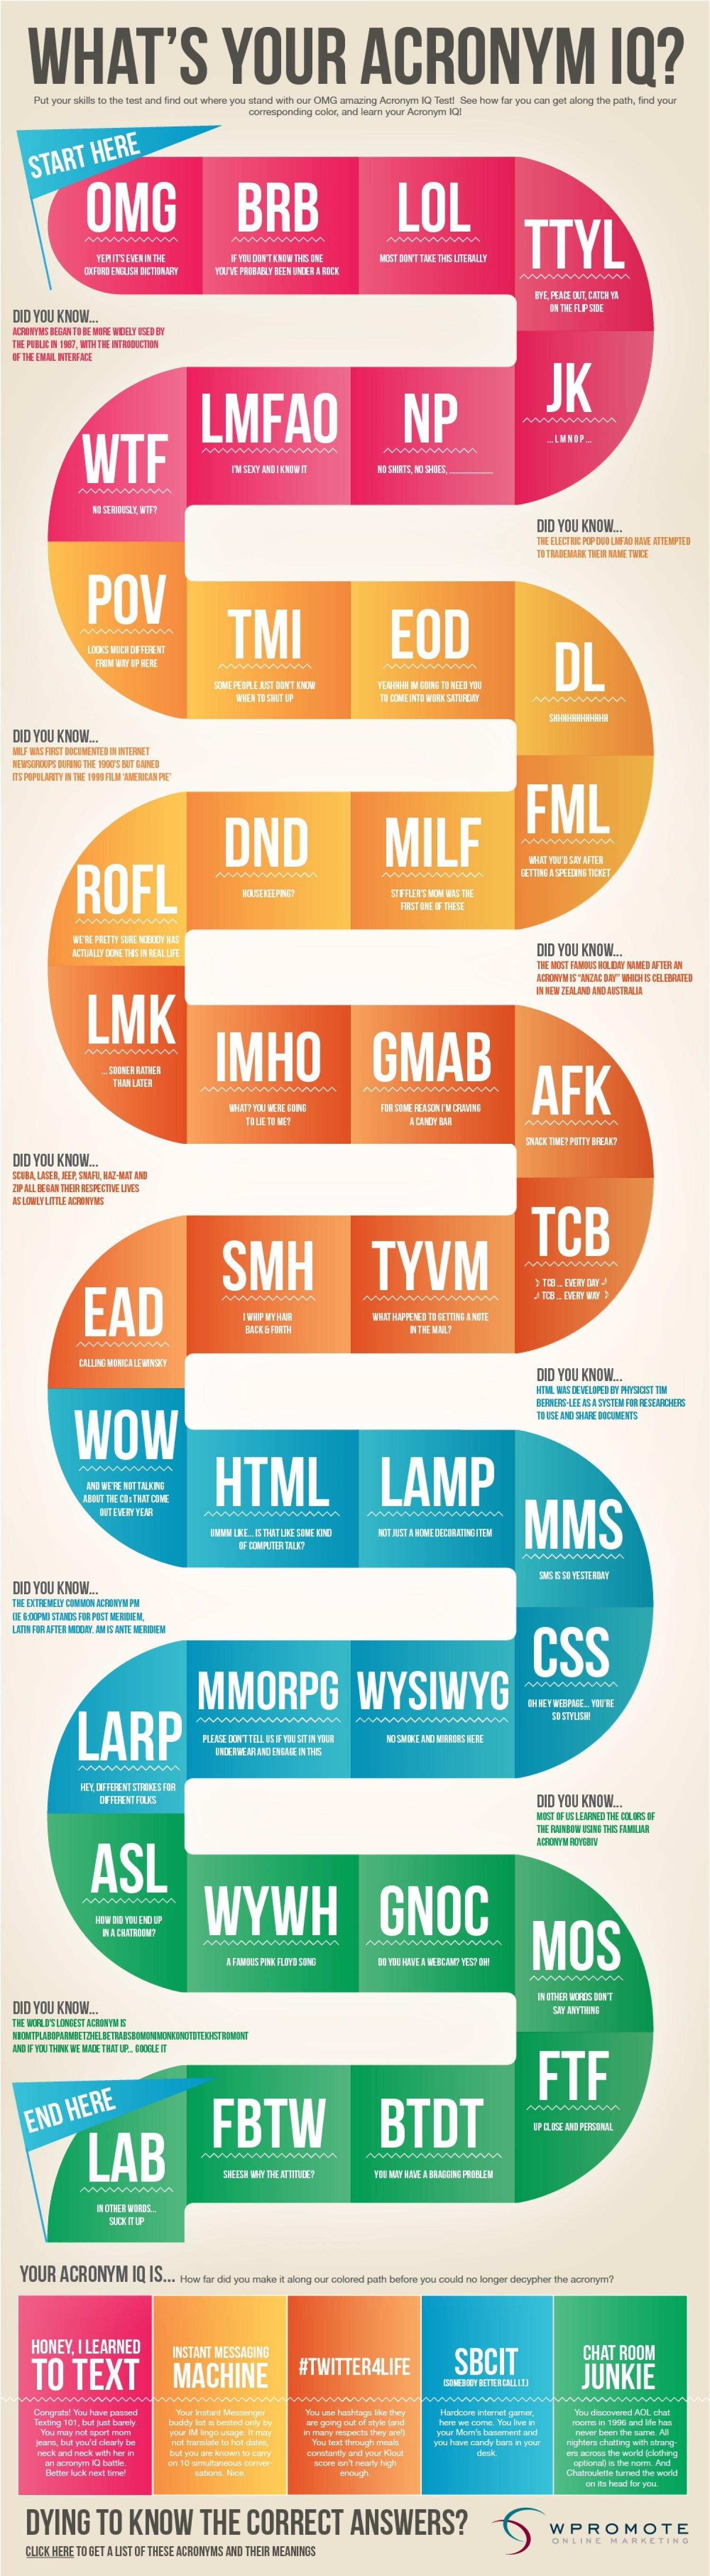 What's Your Acronym IQ? Infographic